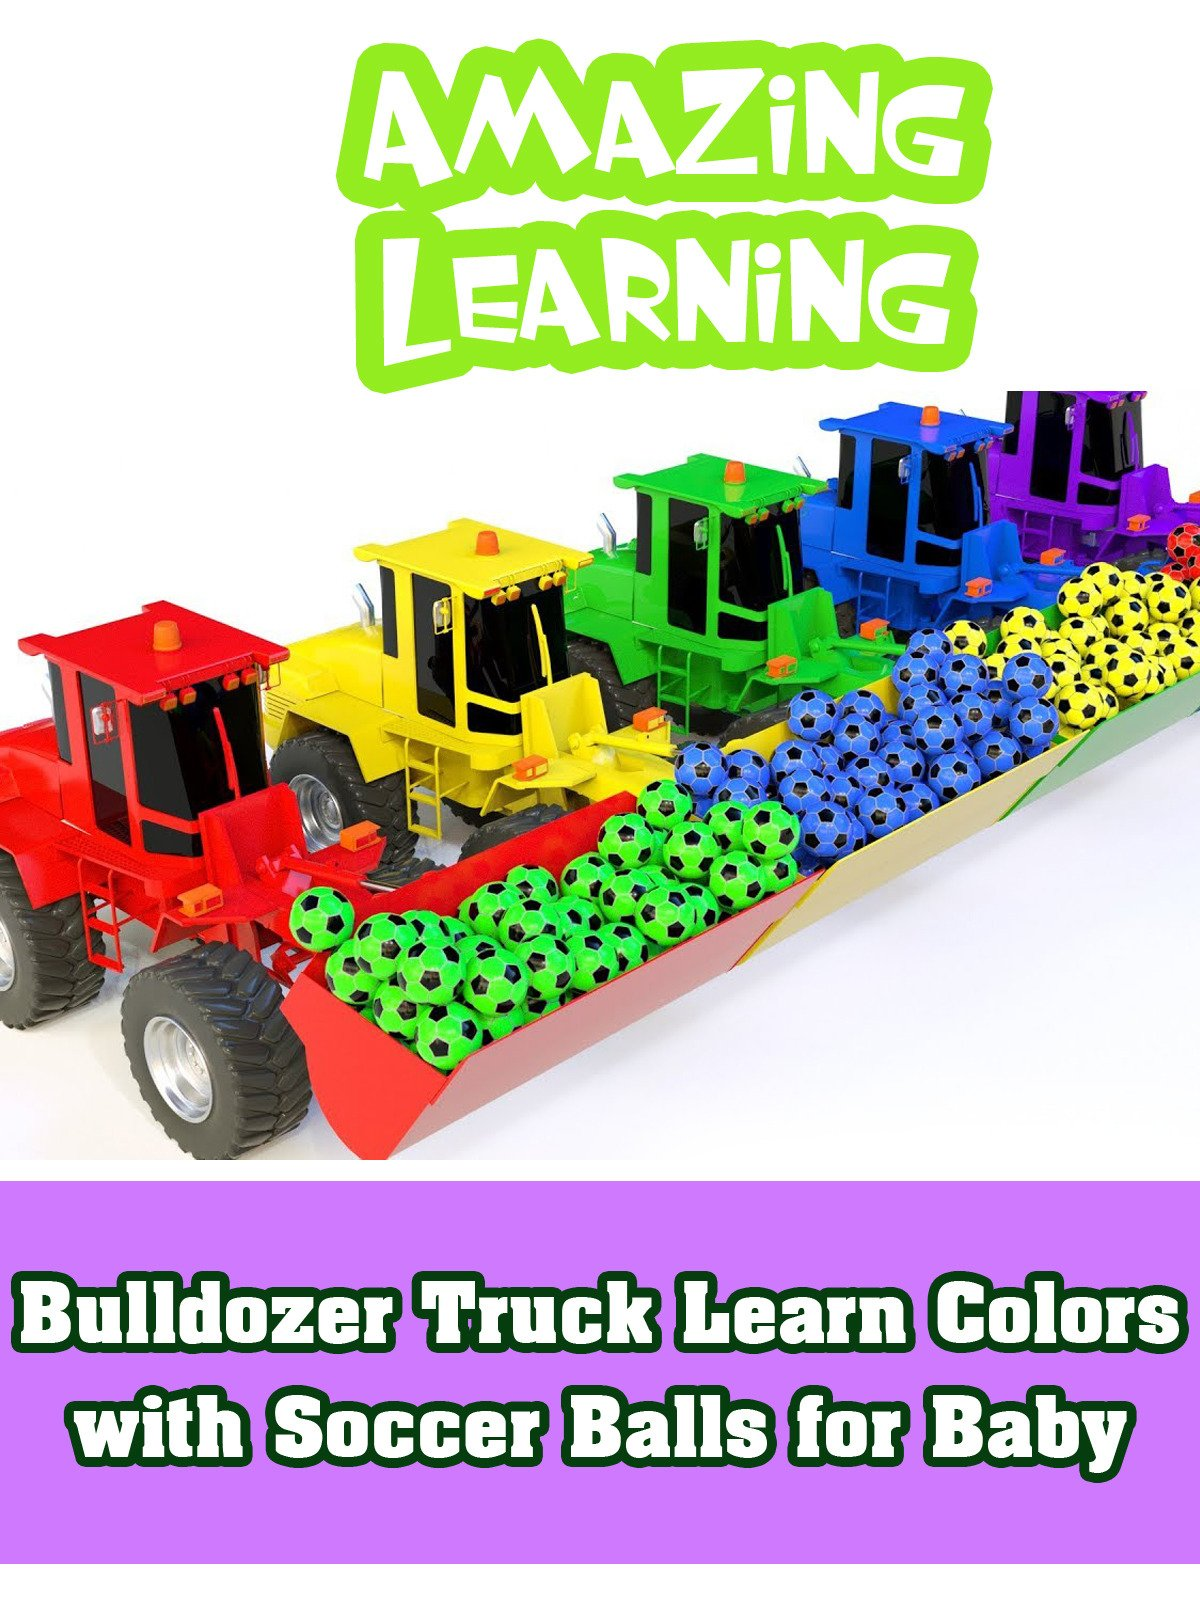 Bulldozer Truck Learn Colors with Soccer Balls for Baby